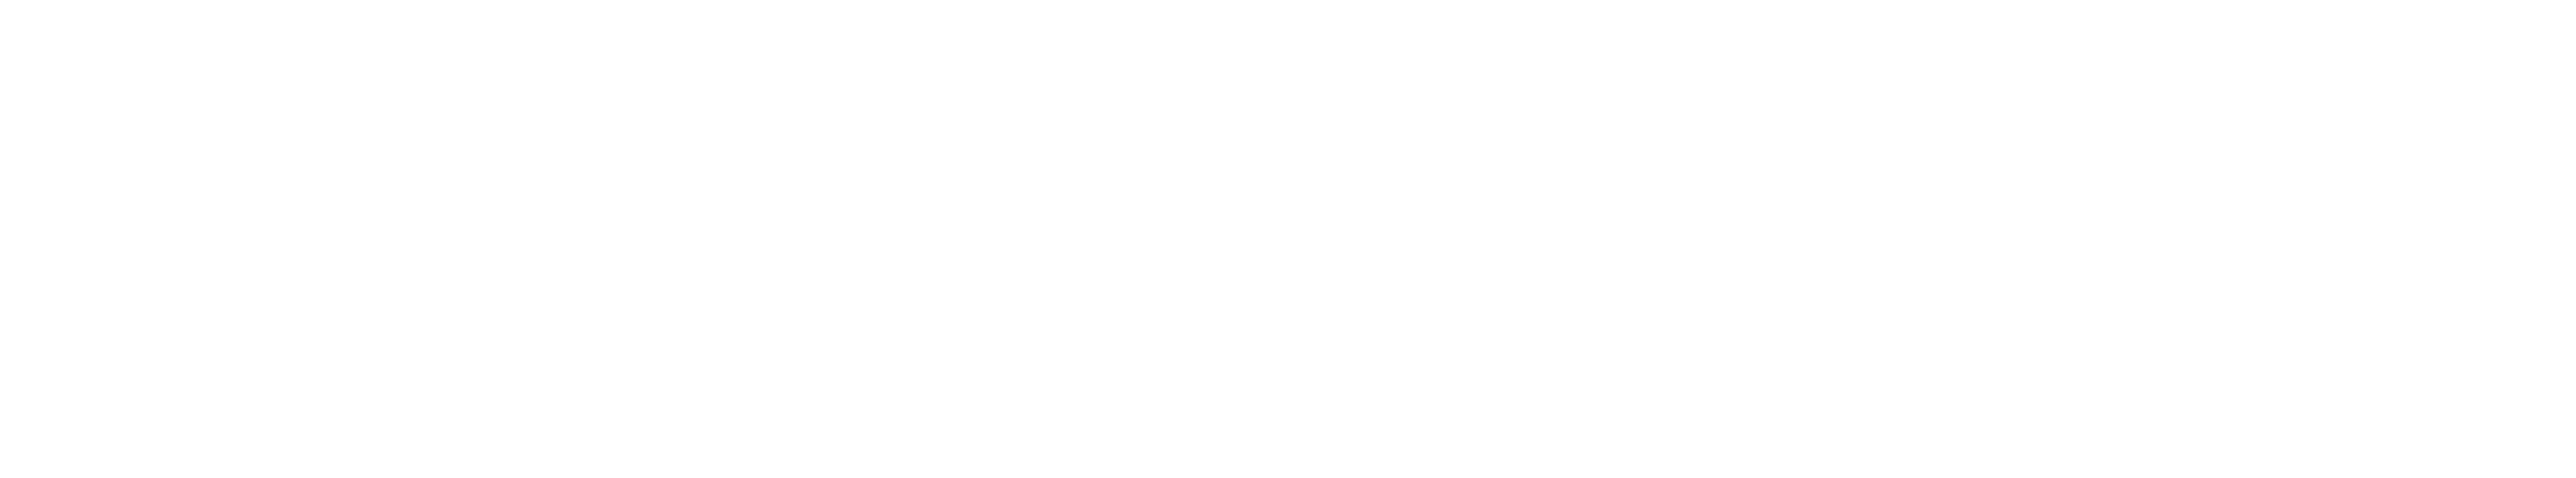 Greater Portland Bible Church